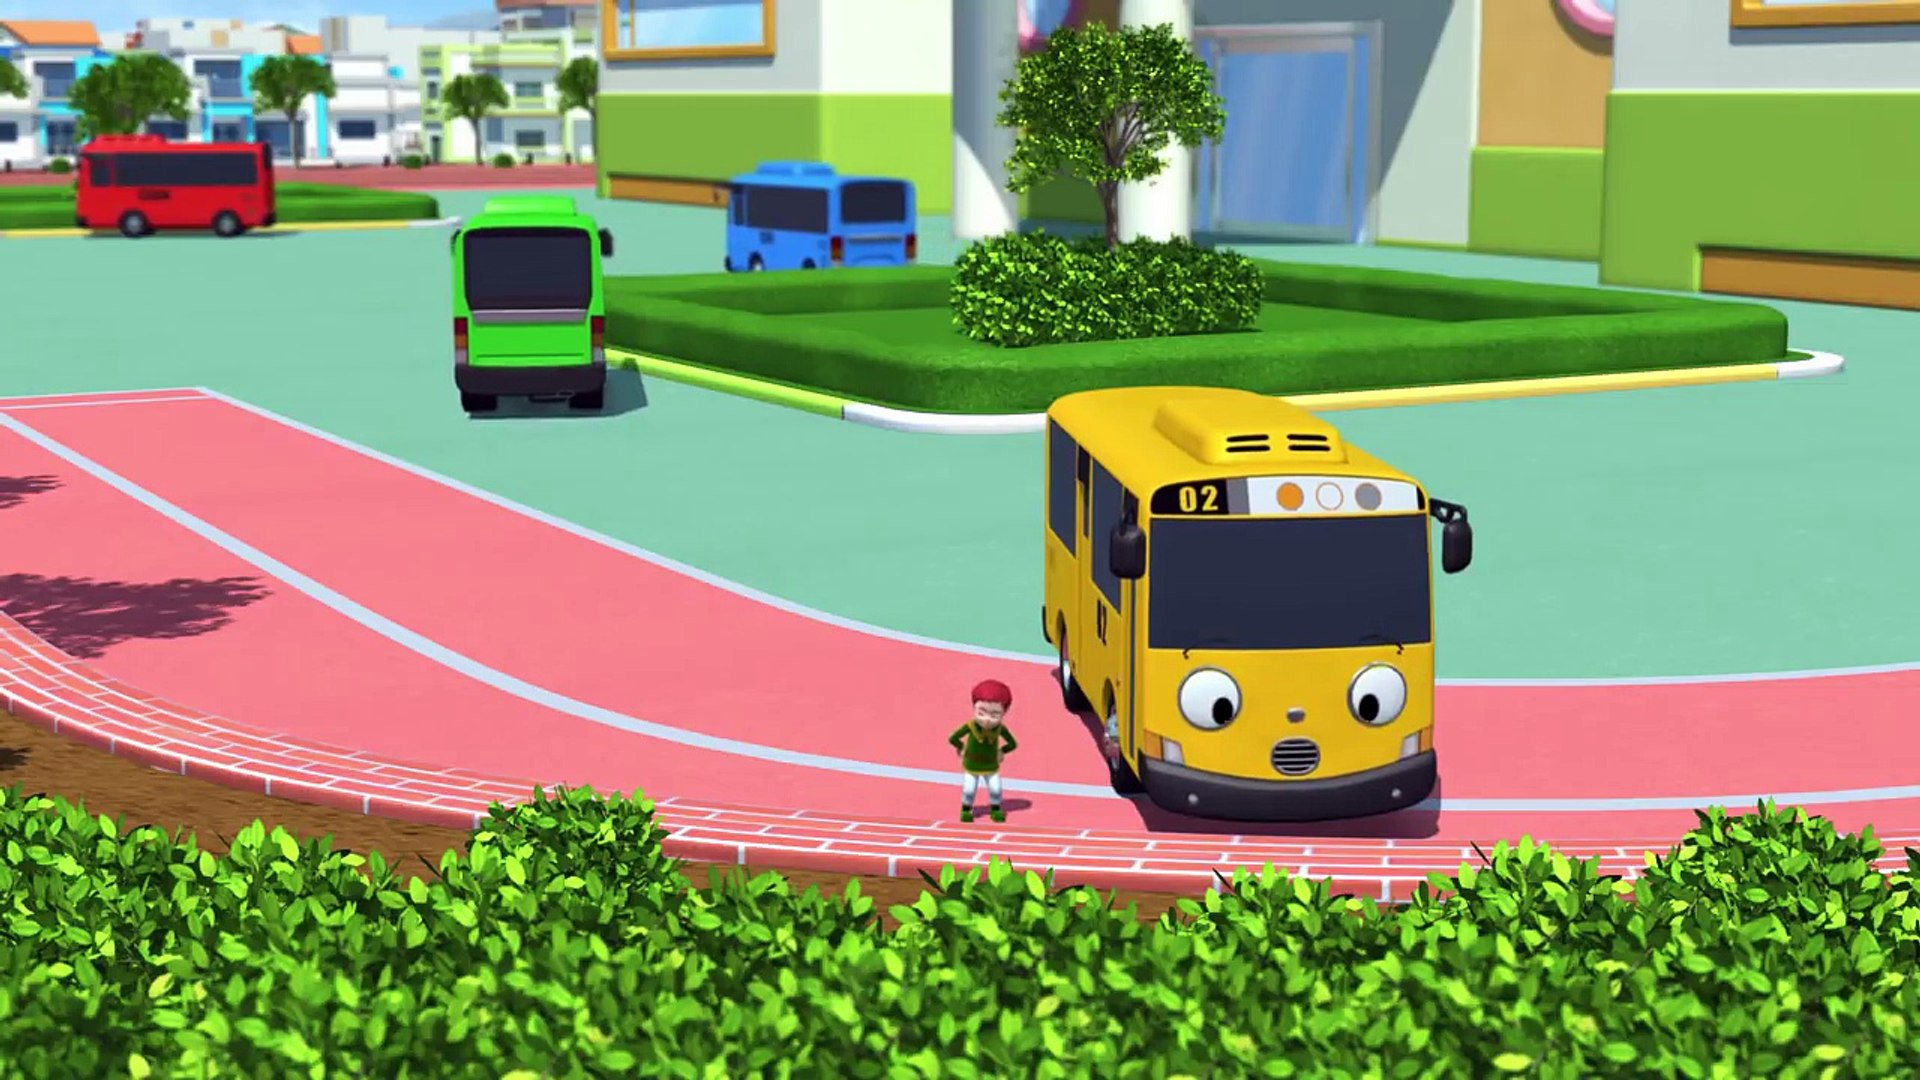 Tayo S4 #15 l Asura the little wizard l Tayo the Little Bus l Season 4  Episode 15 - video Dailymotion